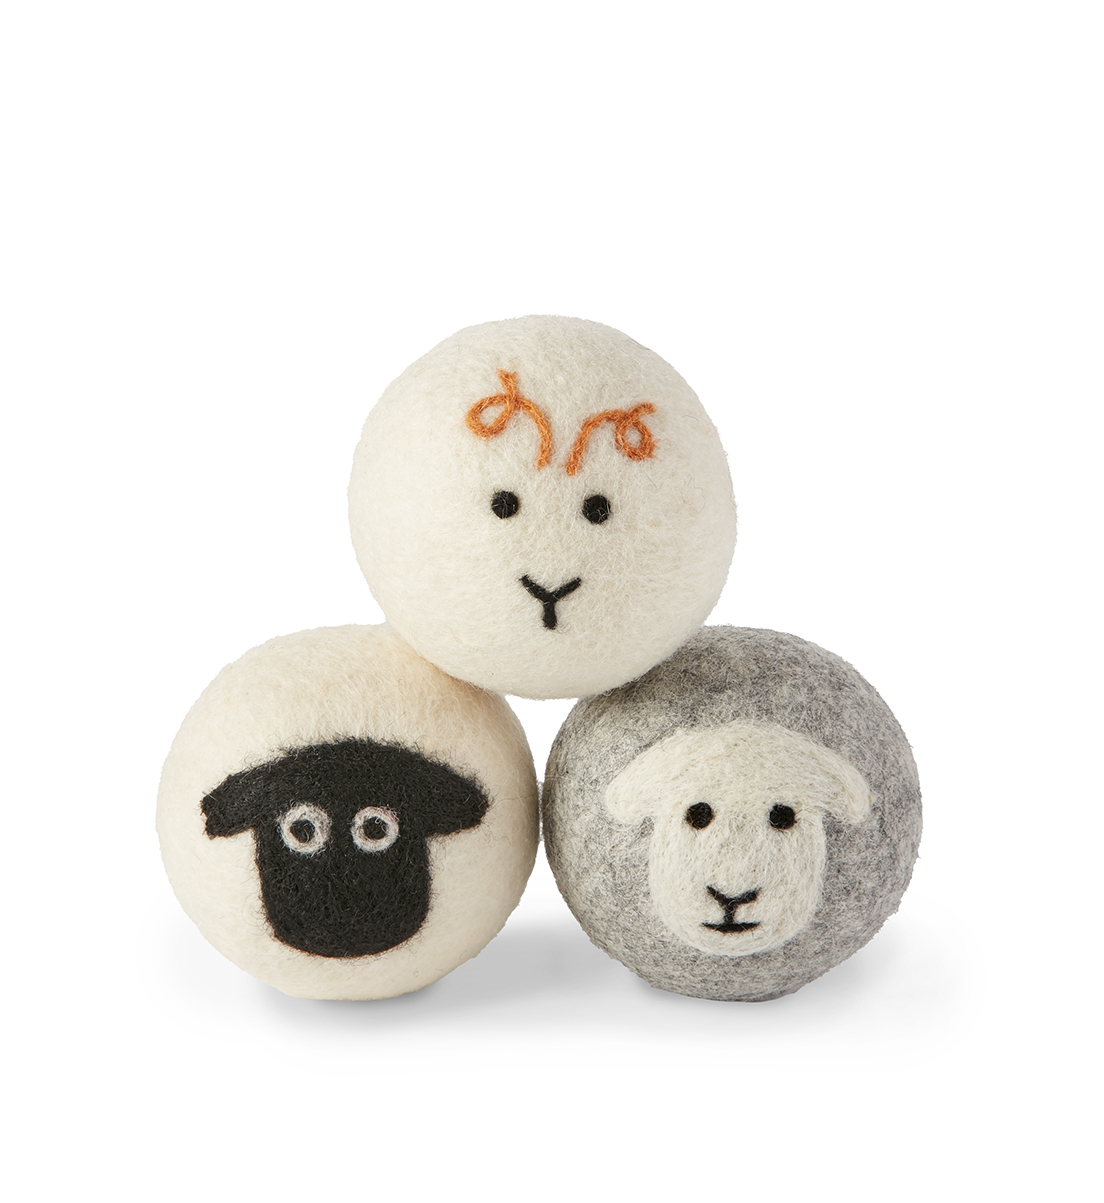 Fluff and Tumble Dryer Balls with Sheep Design